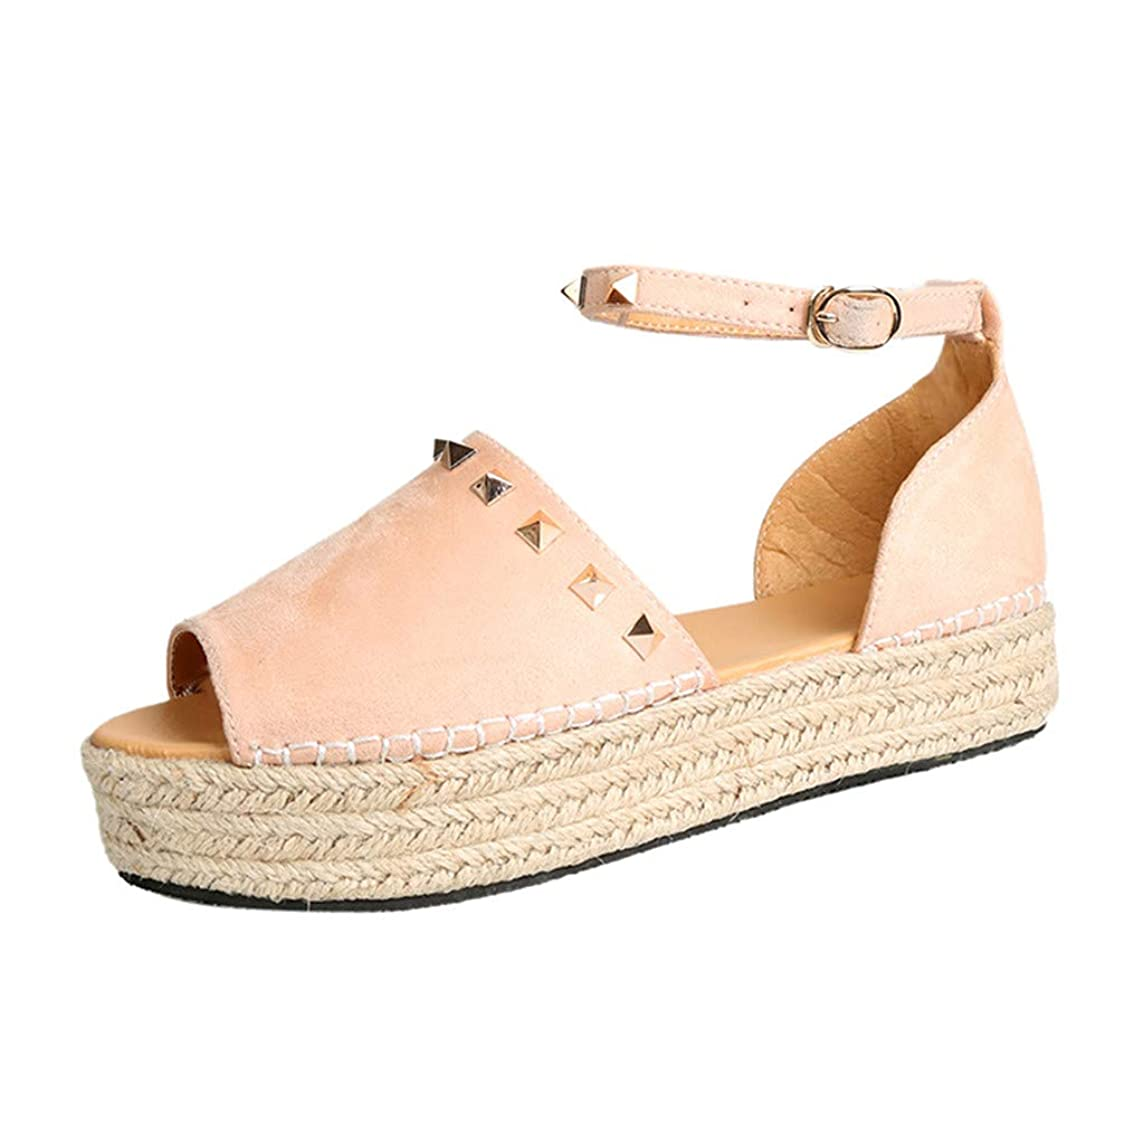 Sunhusing Womens Peep Toe Woven Rivets Embellished with Thick Bottom Wedge Sandals Office Work Roman Shoes